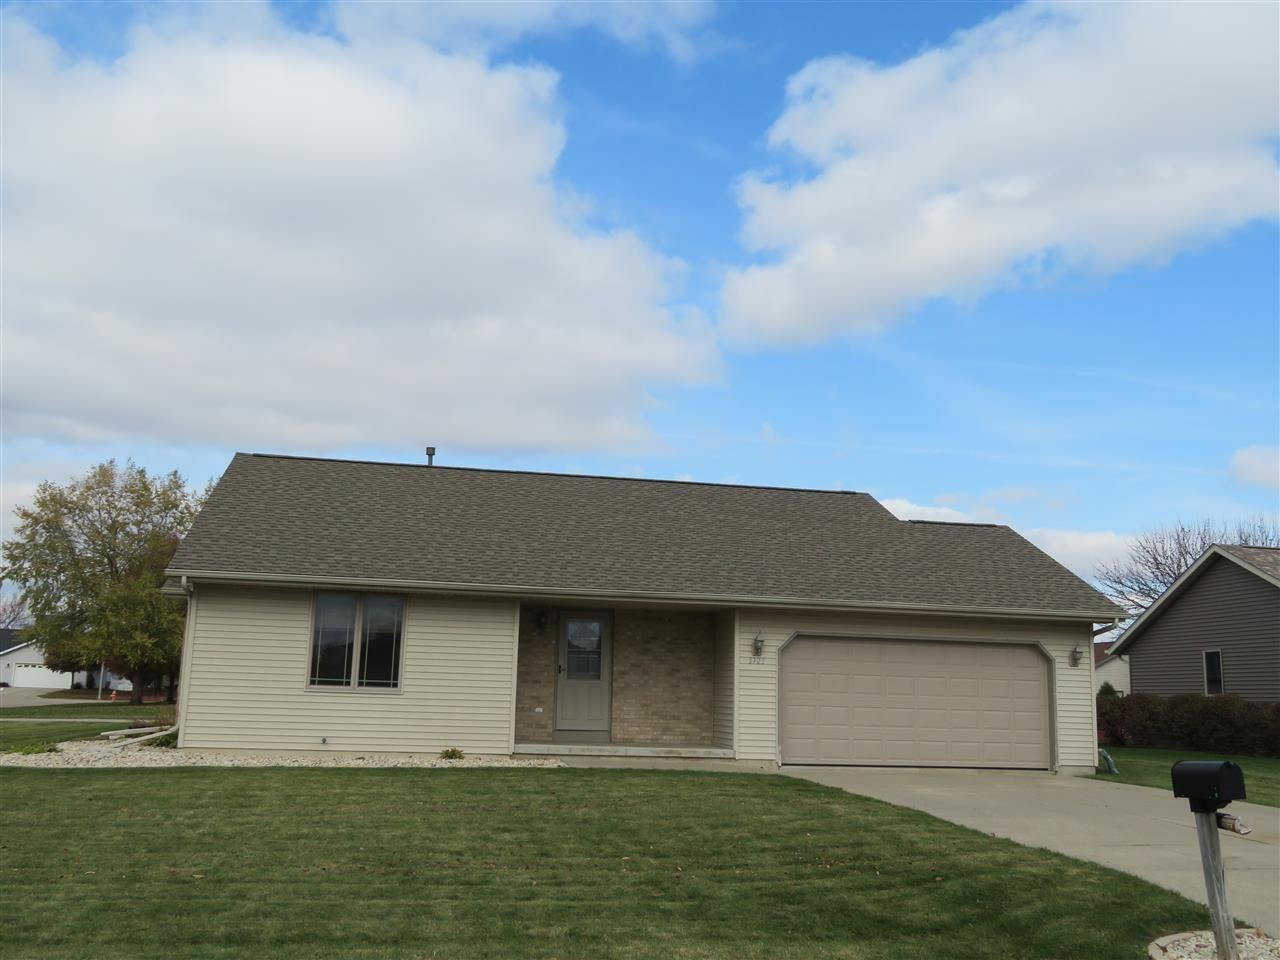 3703 Wintergreen Way #1, Janesville, WI 53546 - #: 1896621